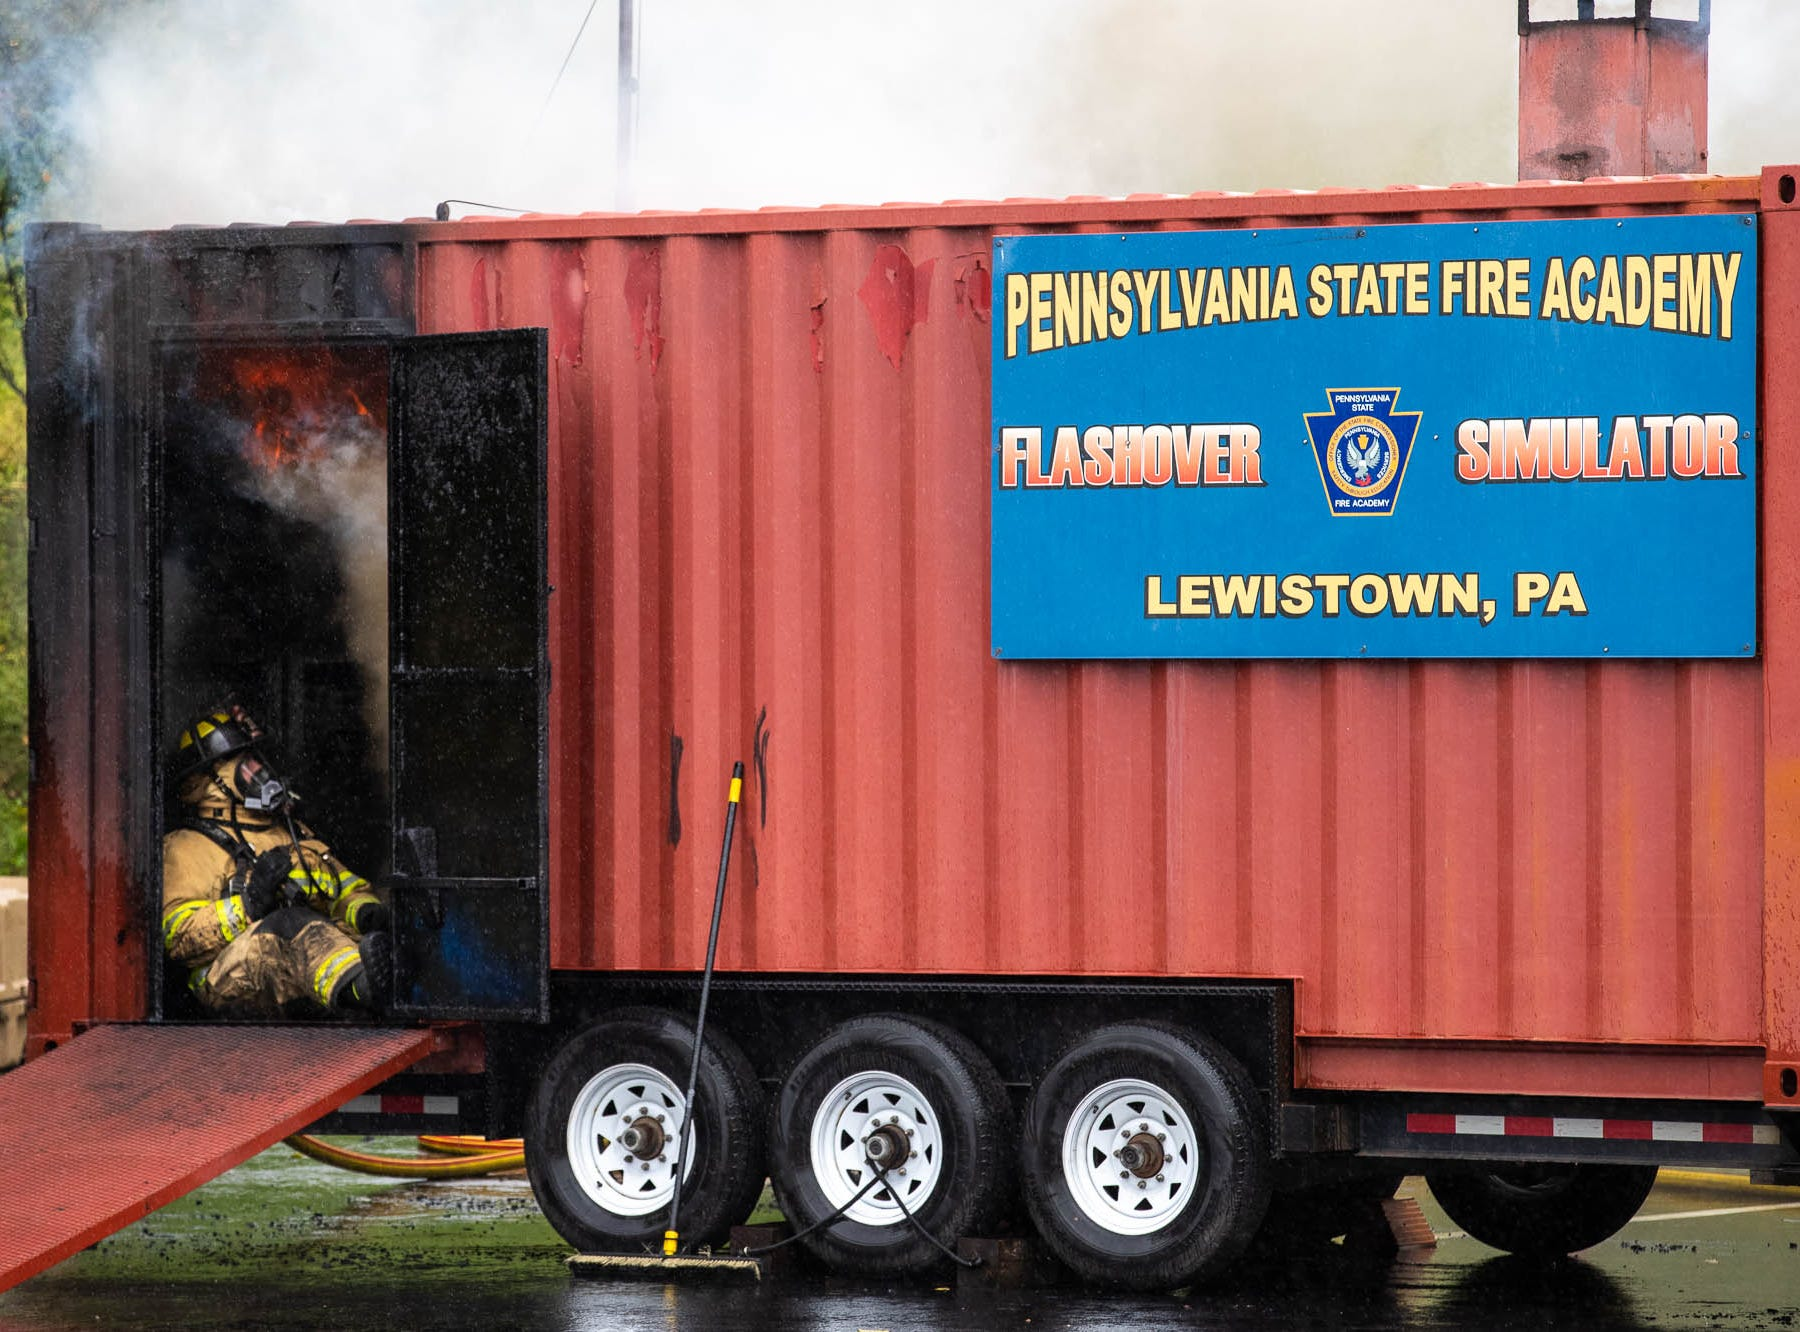 Flames shoot overtop of firefighters as they take part in a flashover simulator at the Hanover Area Fire & Rescue Clover Lane station, Saturday, Sept. 8, 2018, in Penn Township.